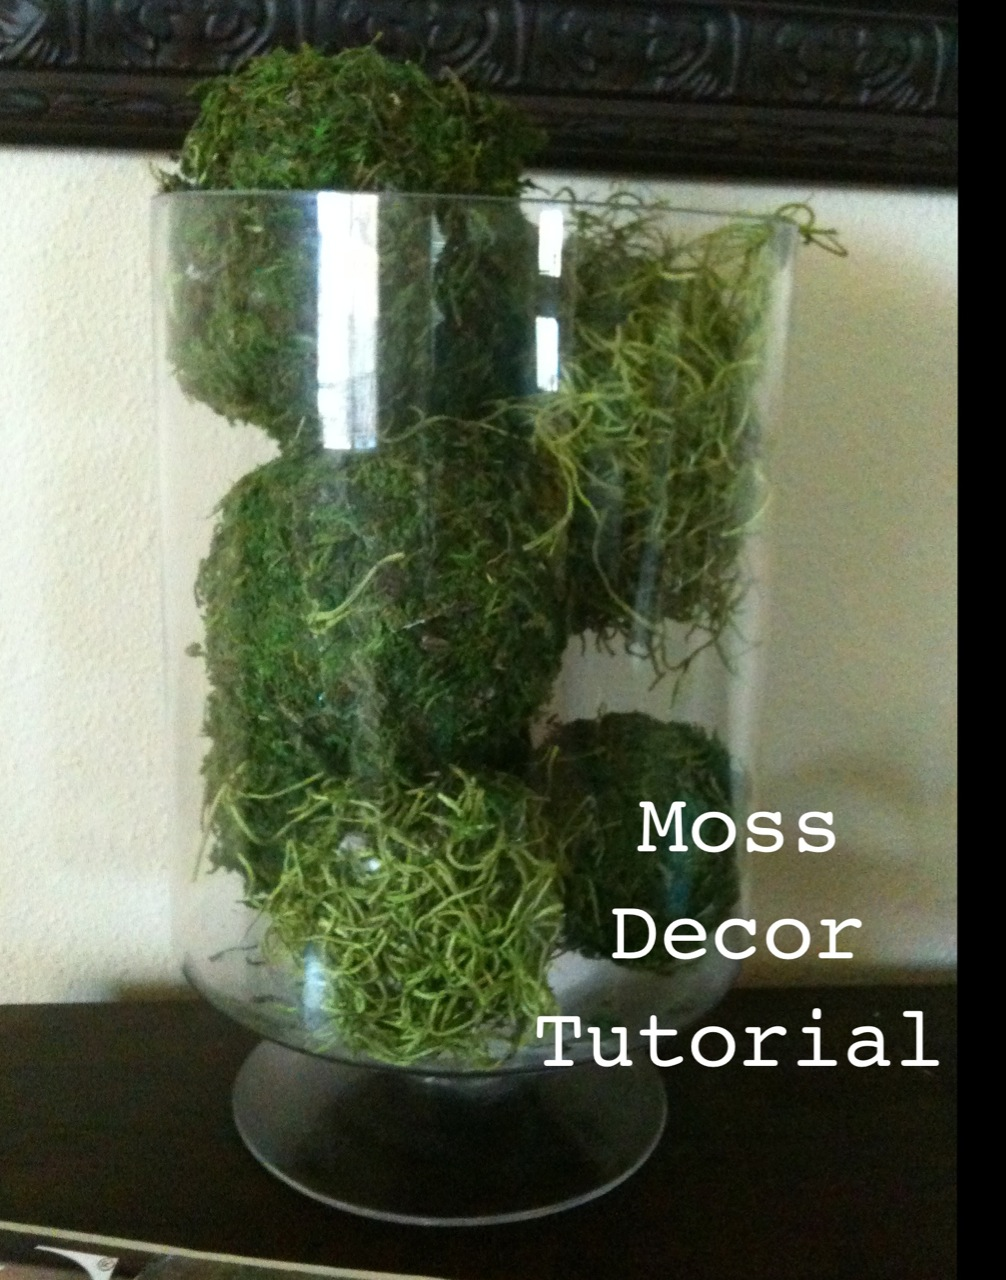 10 Ways To Decorate With Green Moss: .: Moss Decor Tutorial